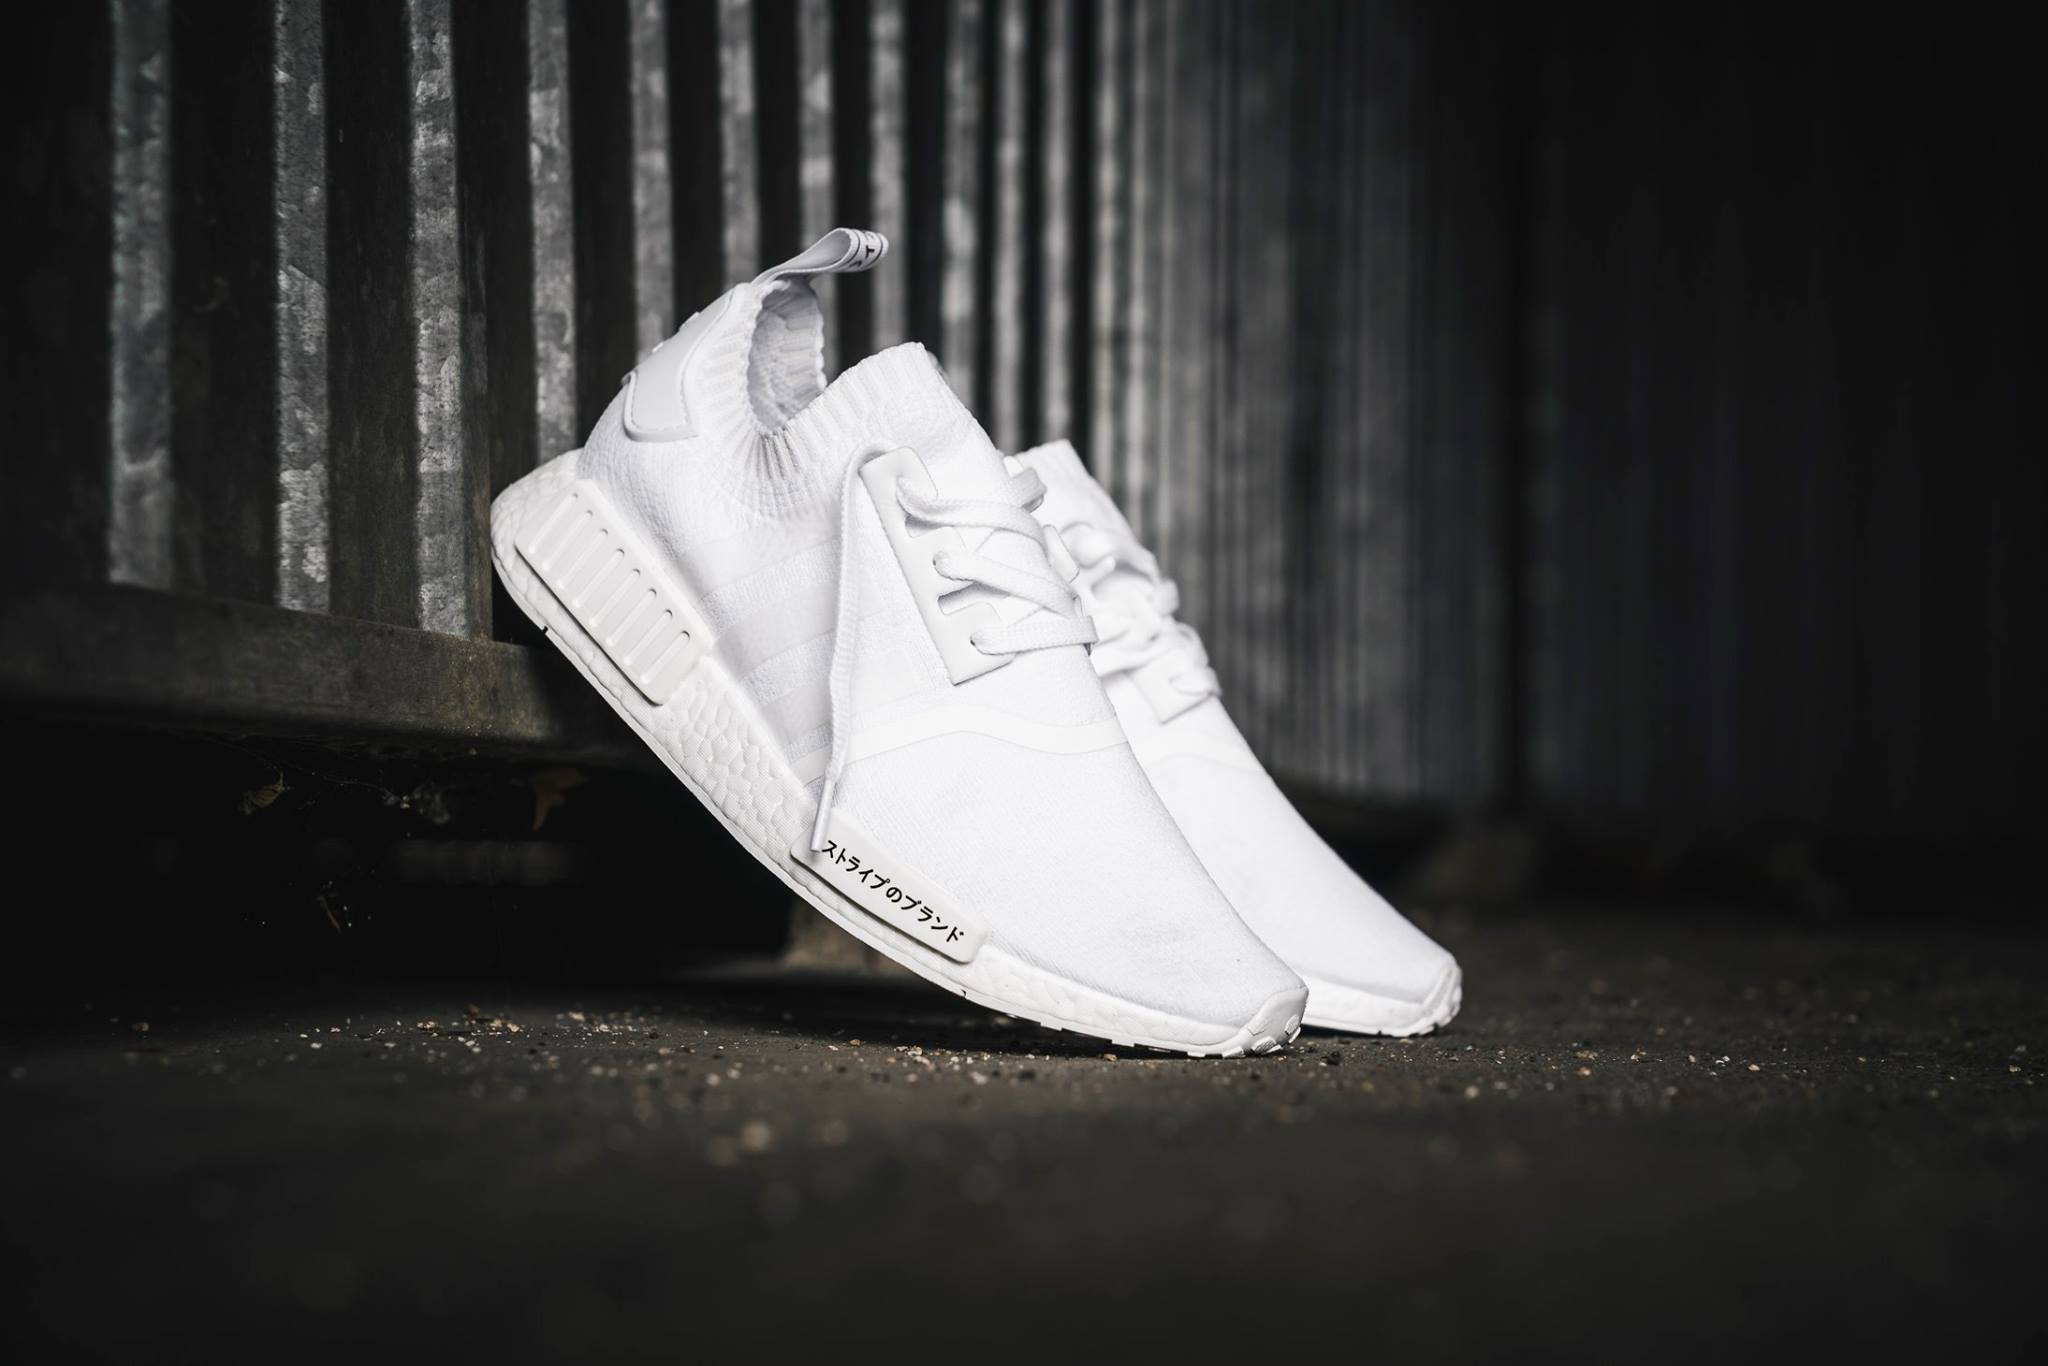 adidas NMD R1 Primeknit Japan Triple White Releasing This